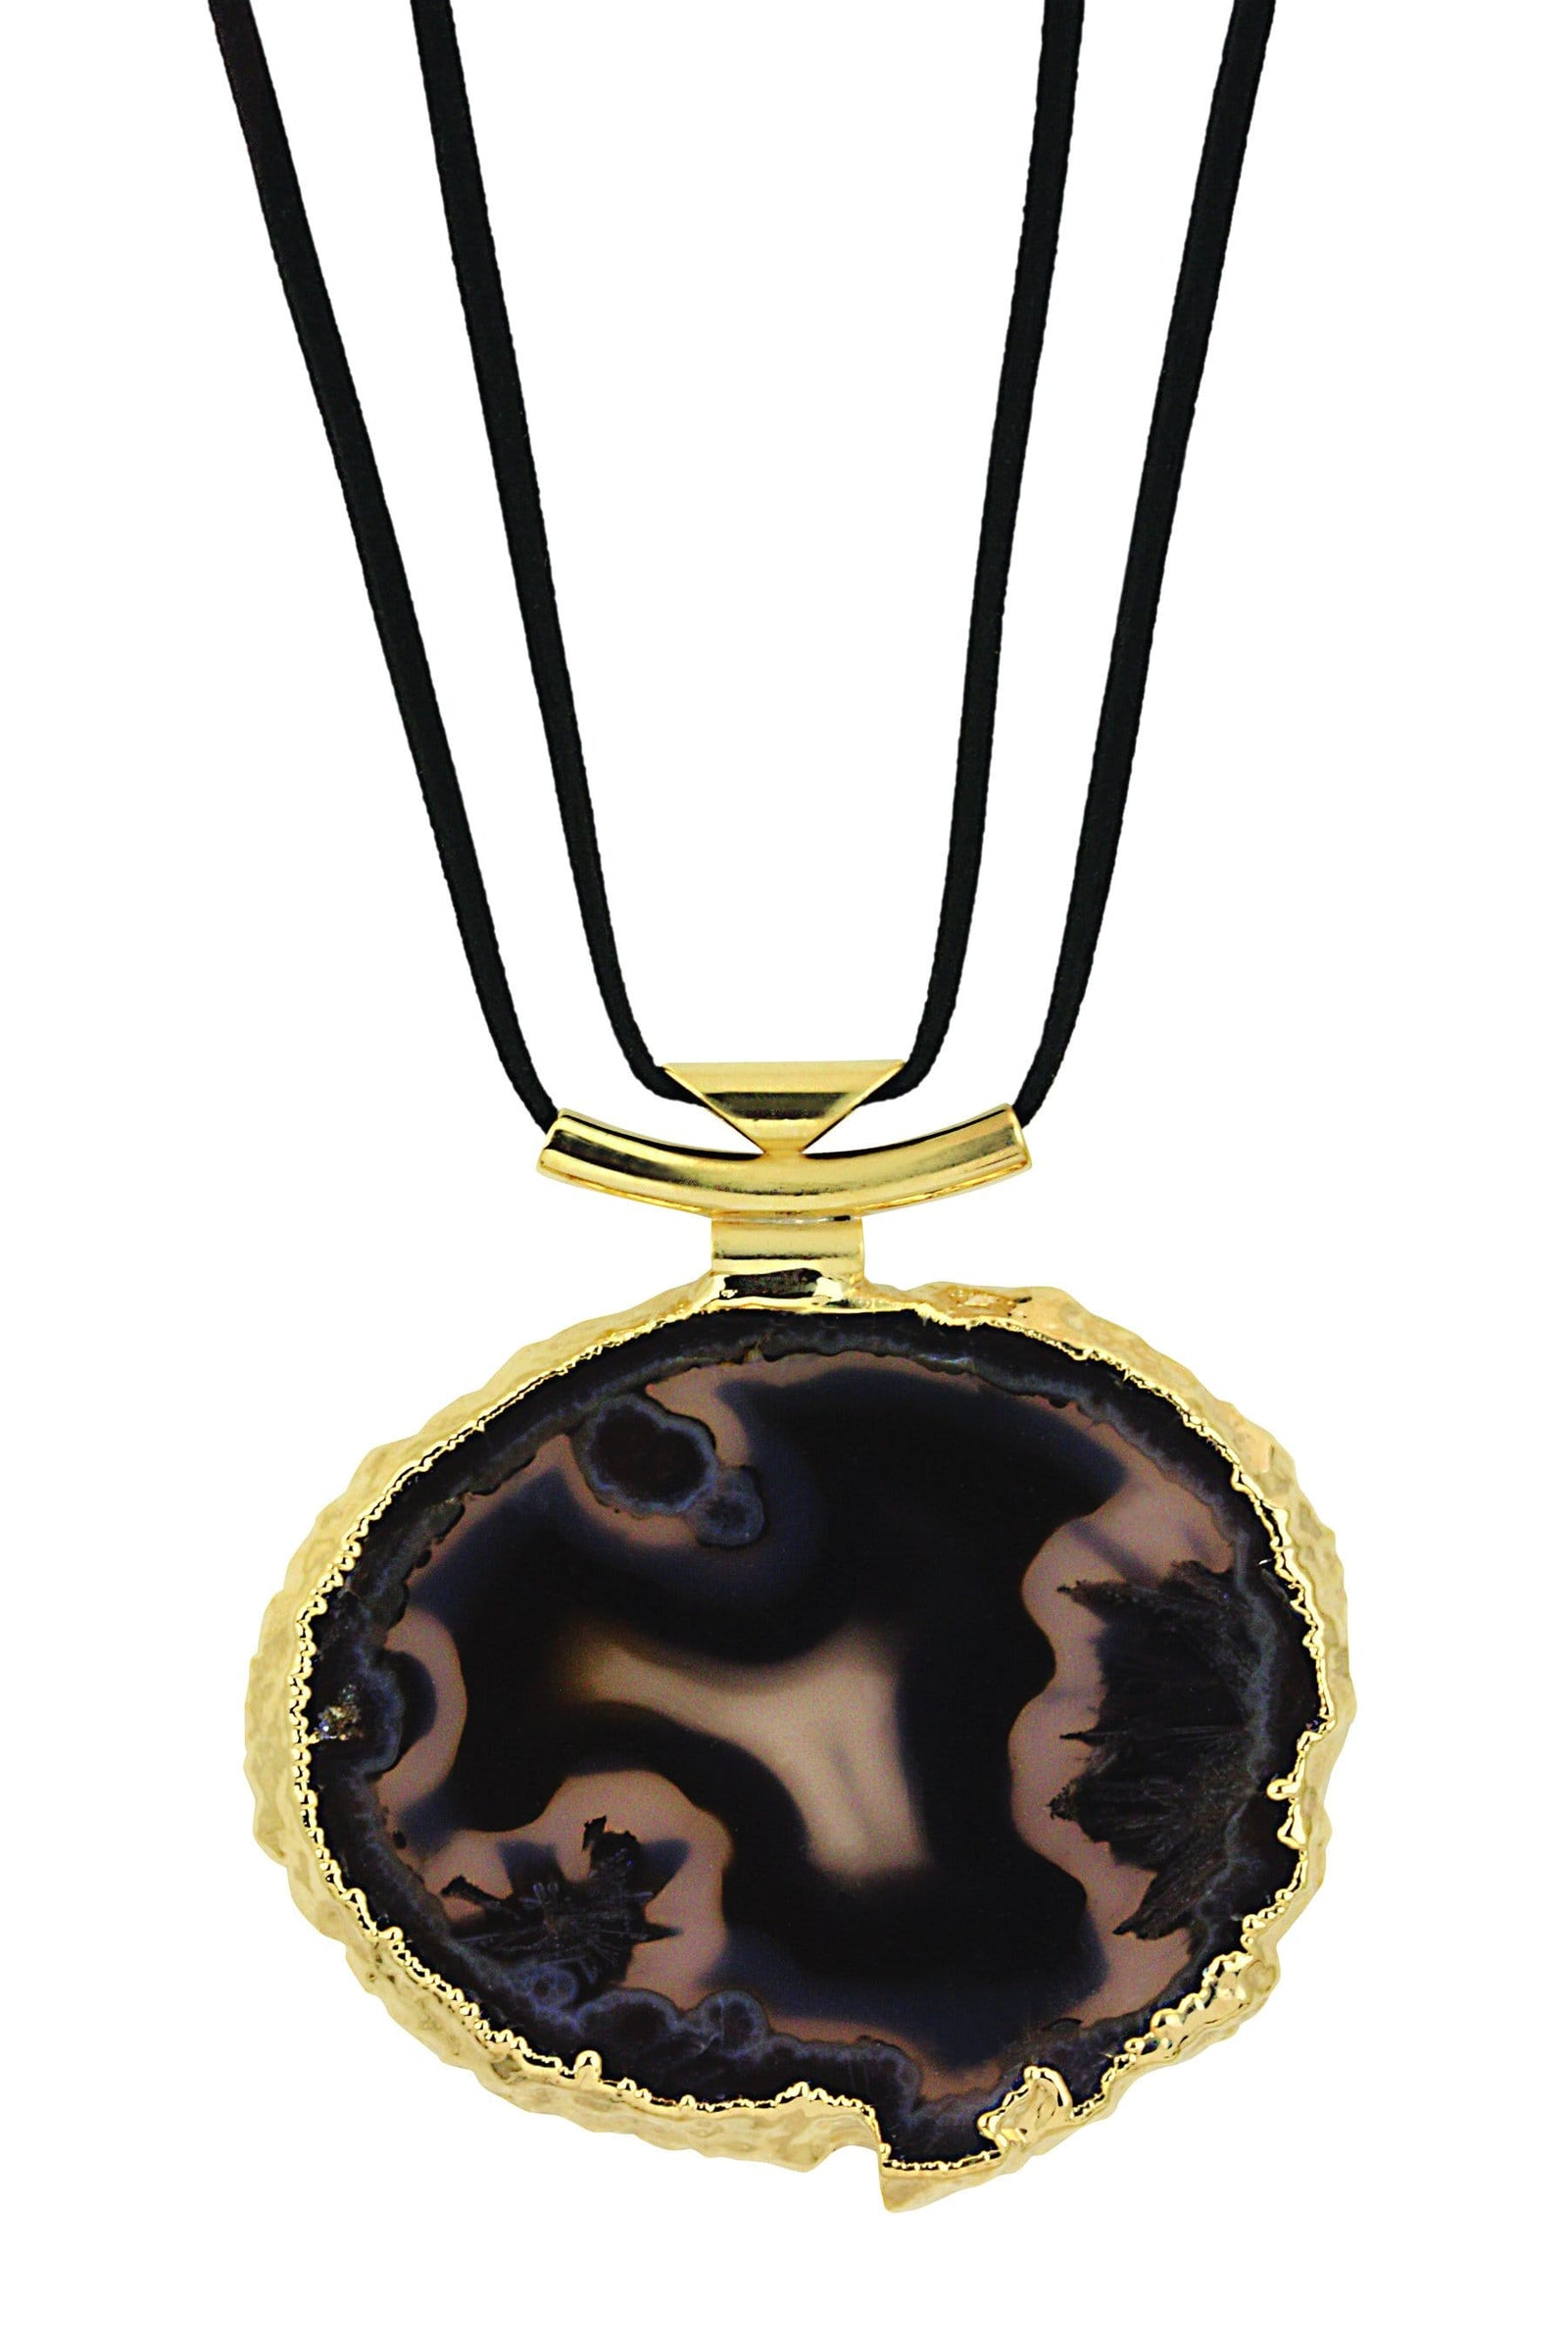 Bracelets - Agate Necklace With Black Leather Cord In Silver Or 24k Gold Electroplated - (RK191)